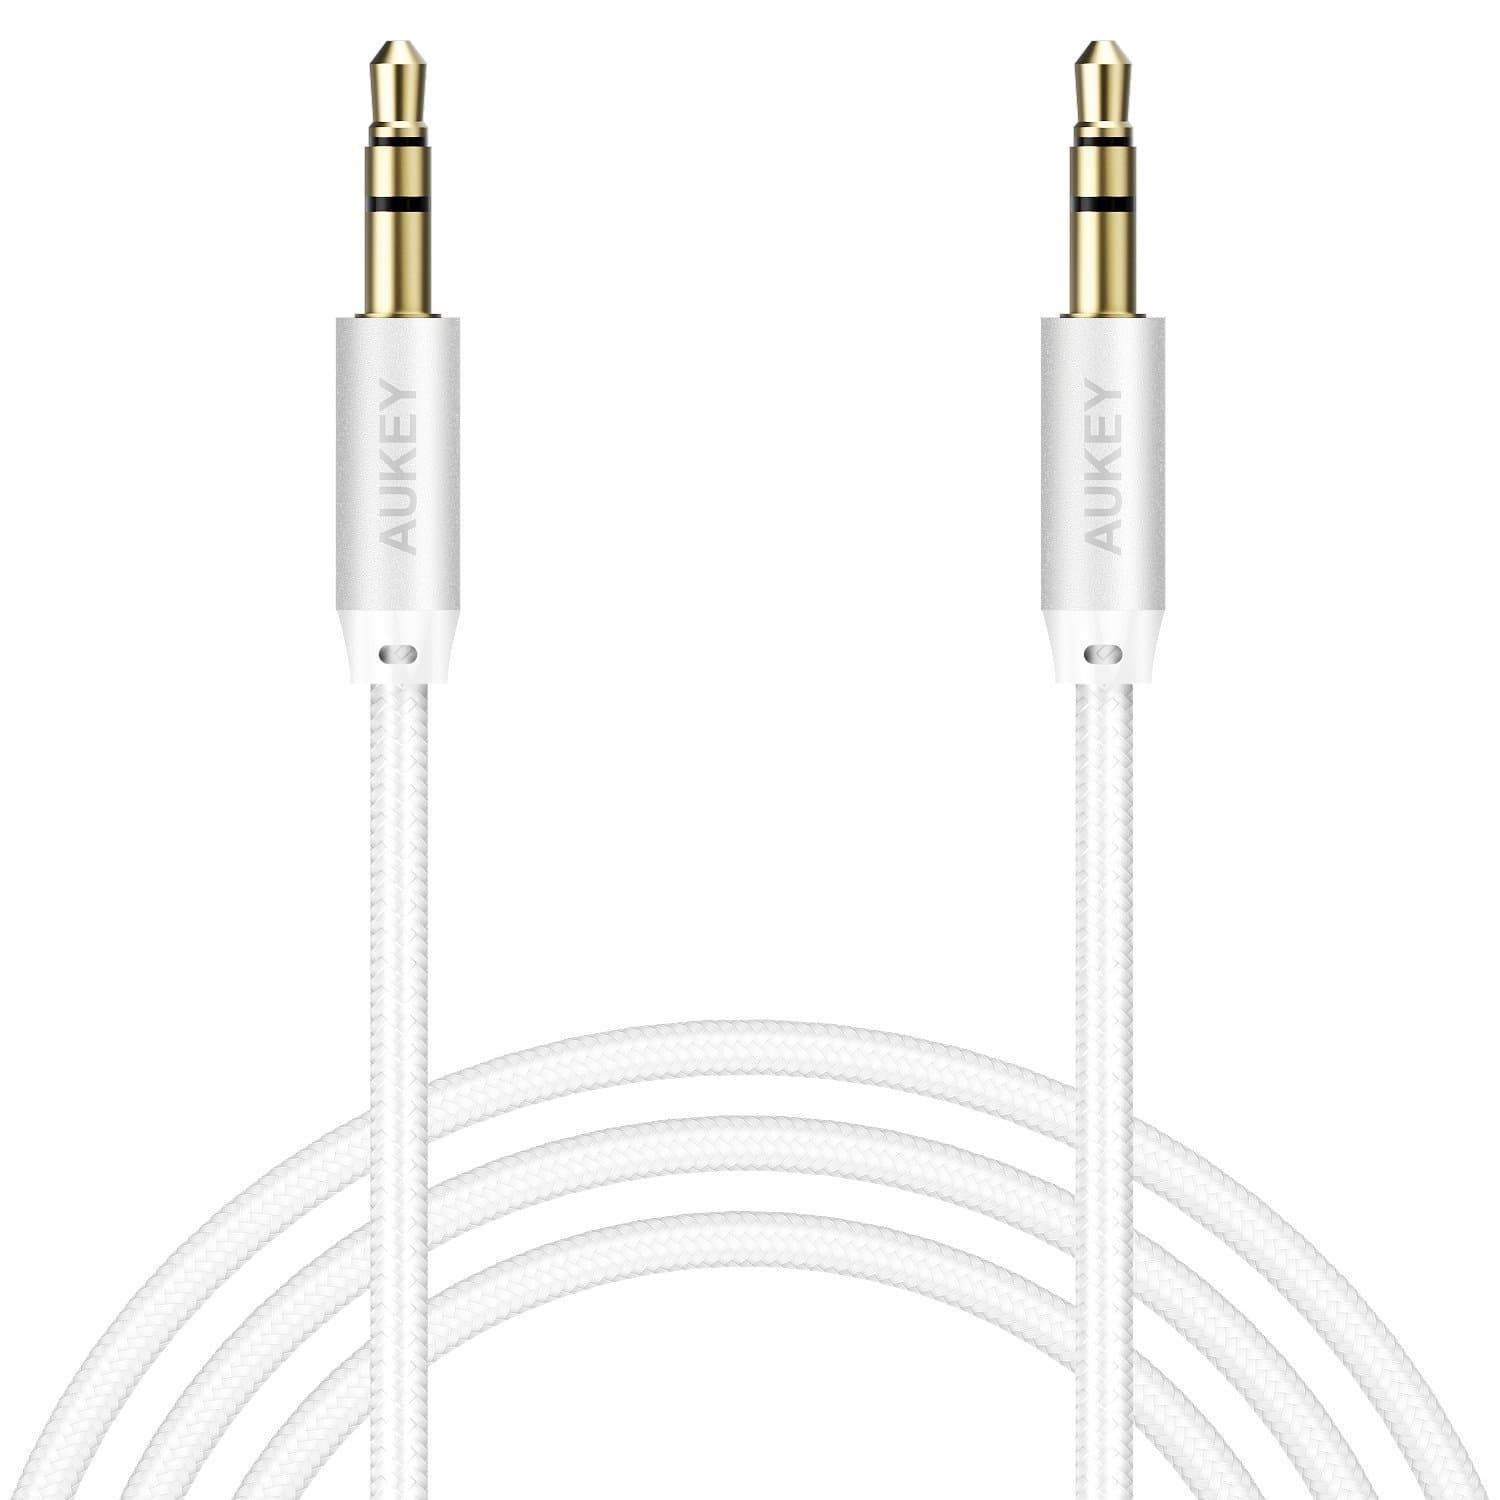 Audio Cables - Aukey Malaysia Official Store